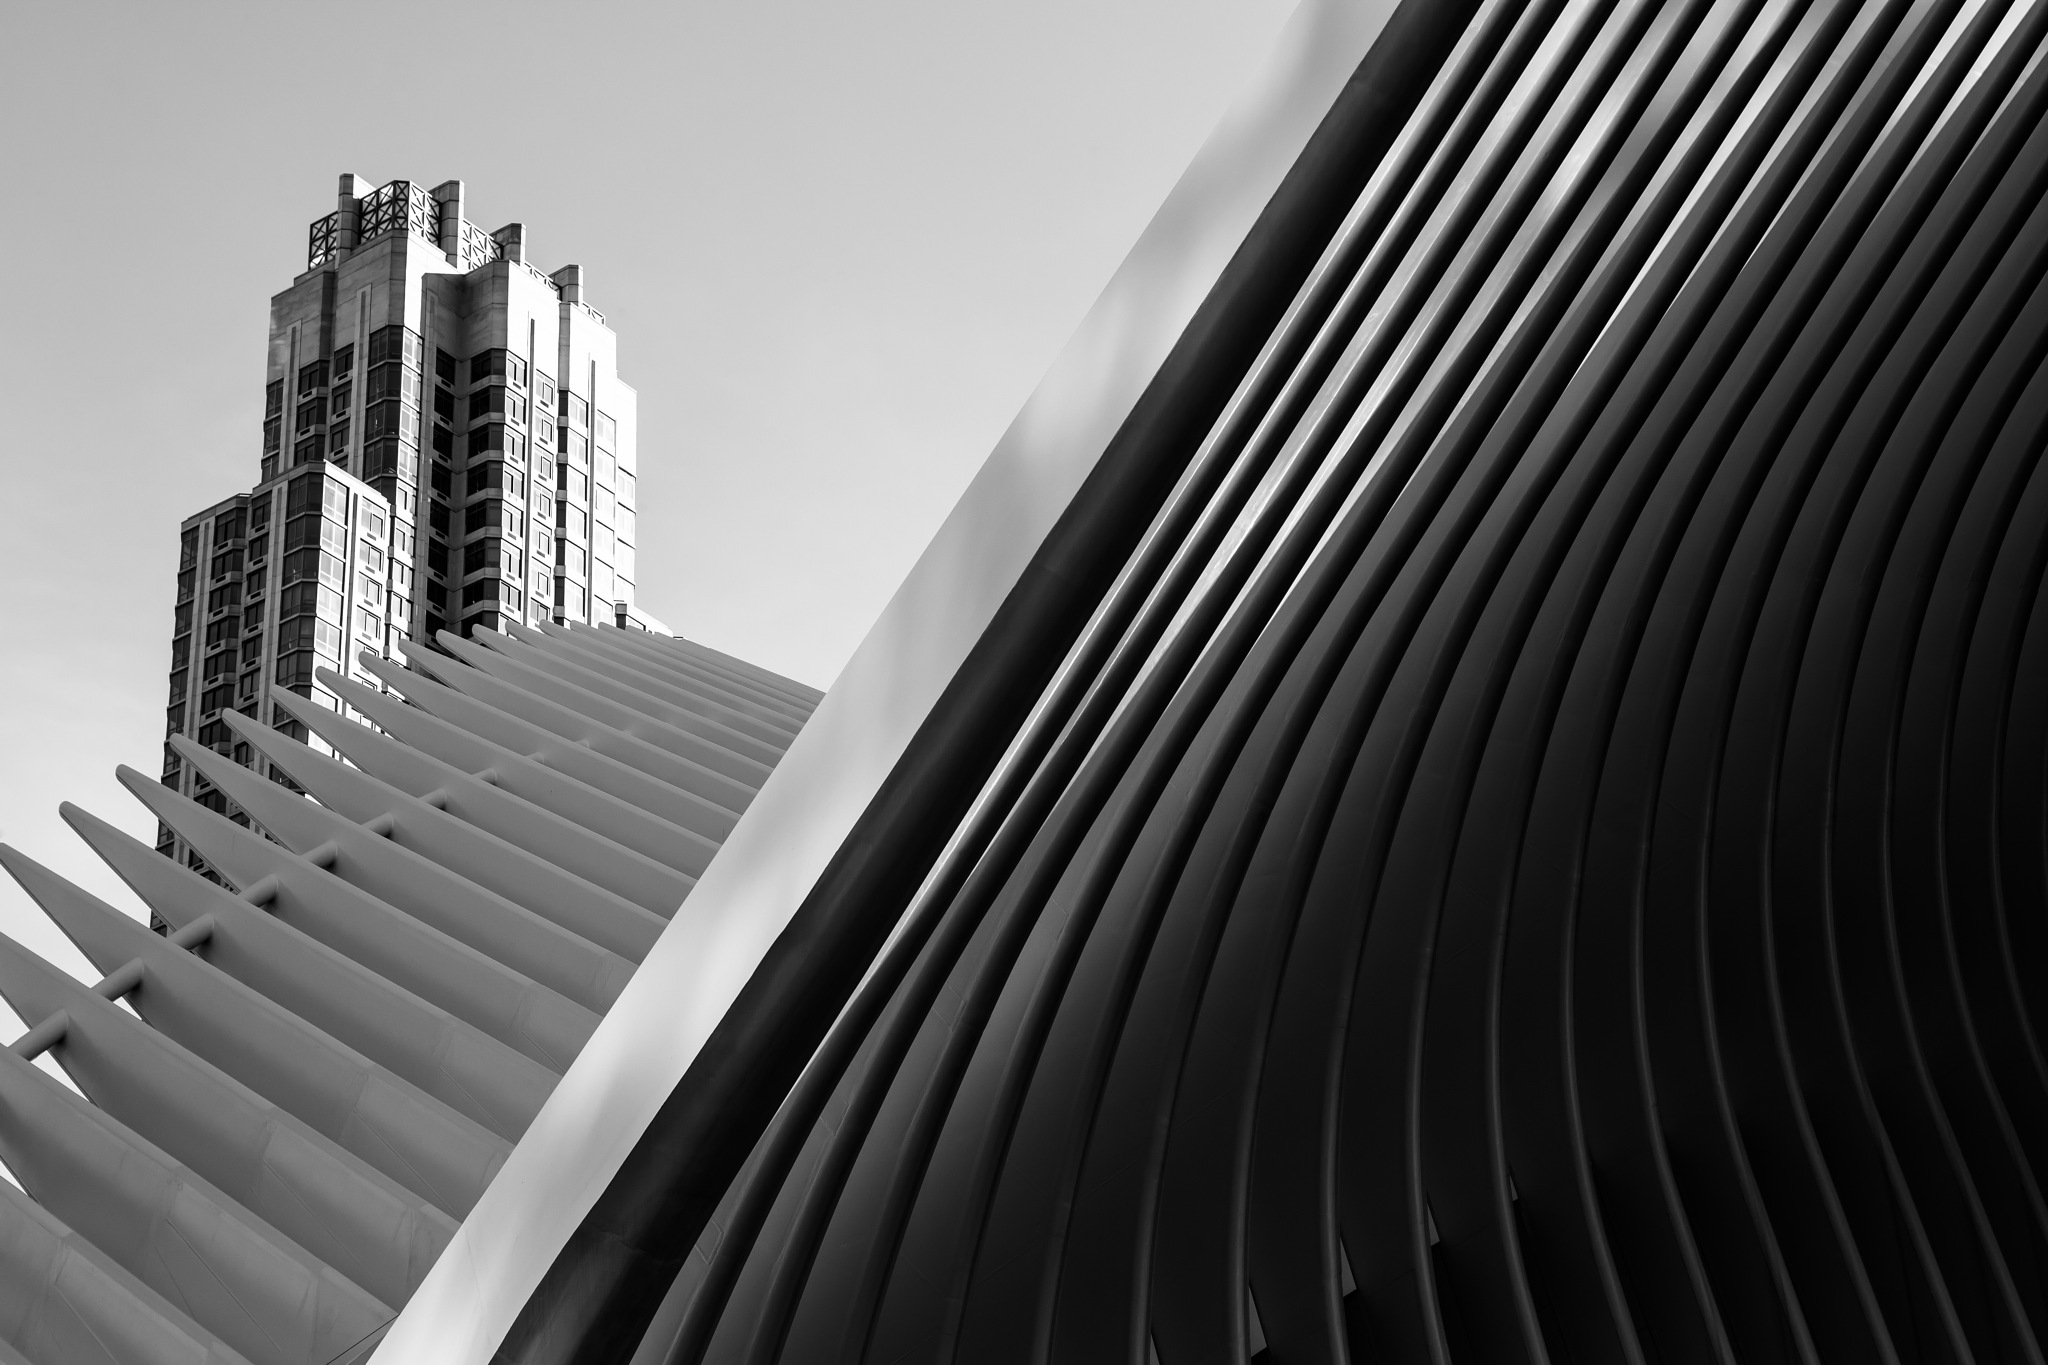 Oculus, New York by Tony Wallbank